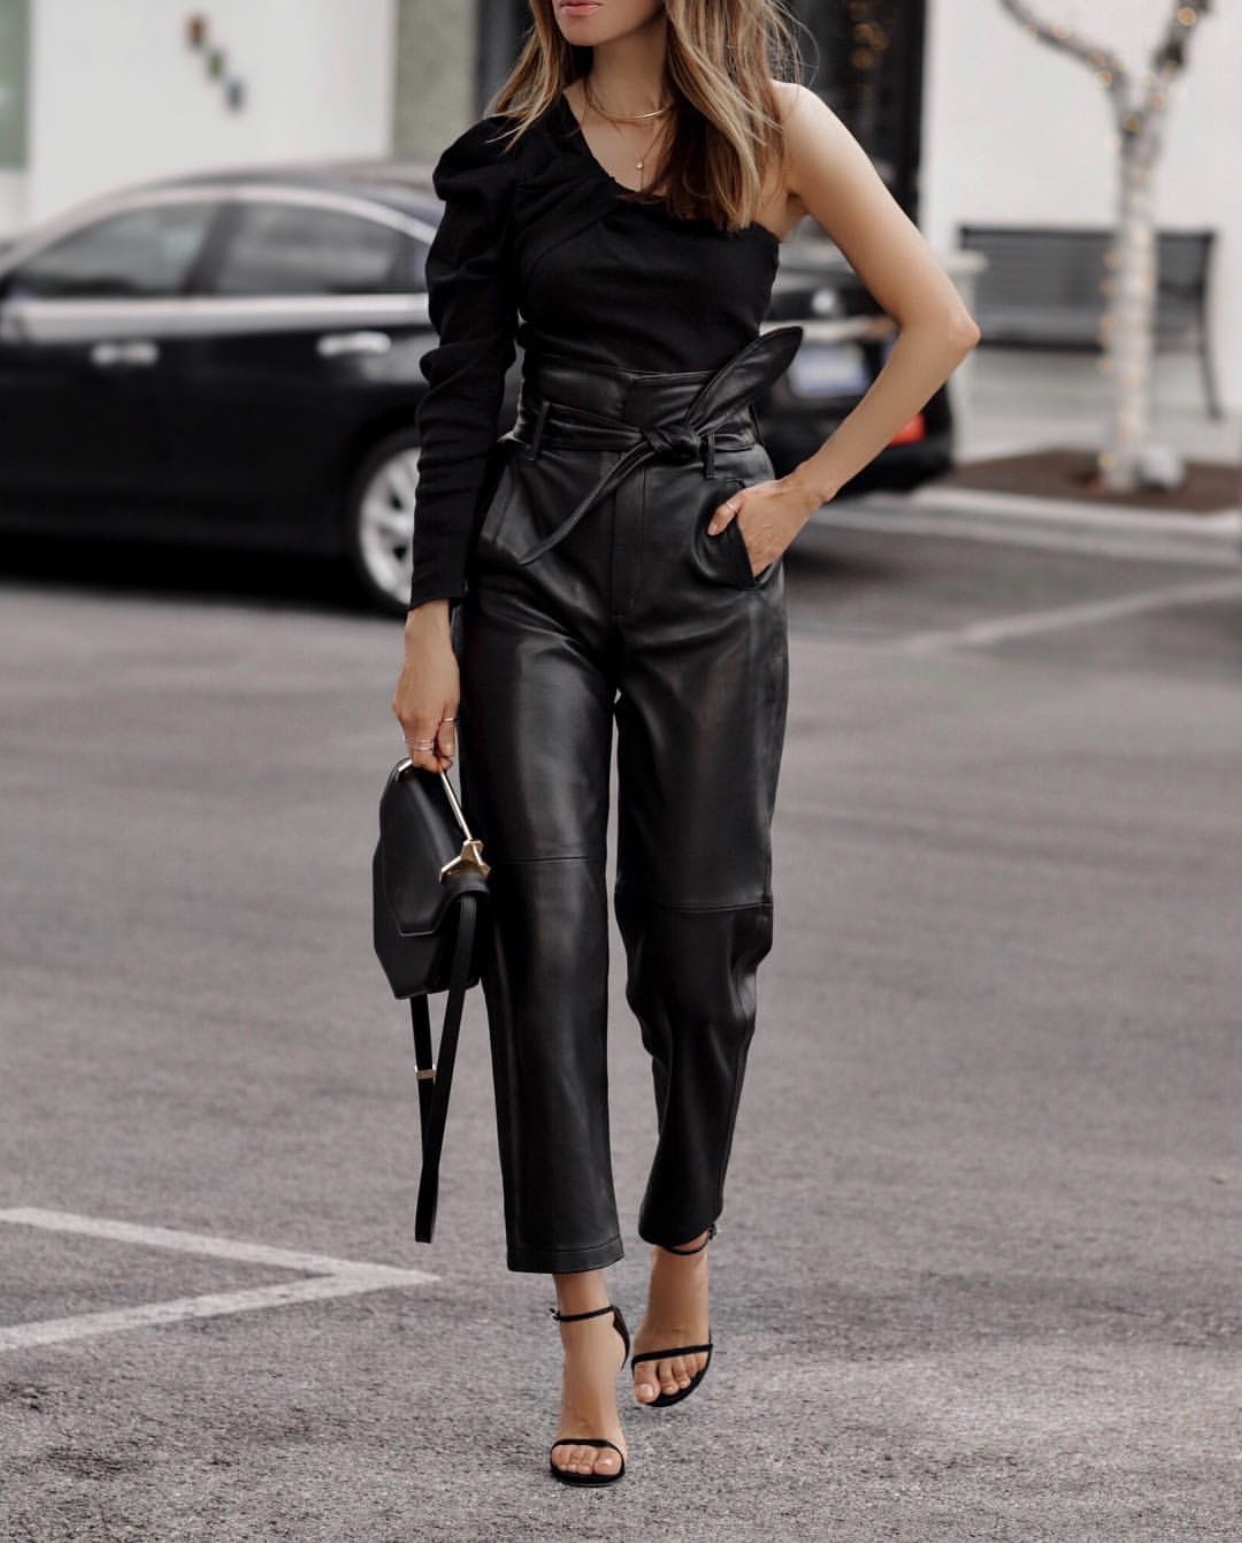 black one shoulder top, leather pants, black boots // lolariostyle.com